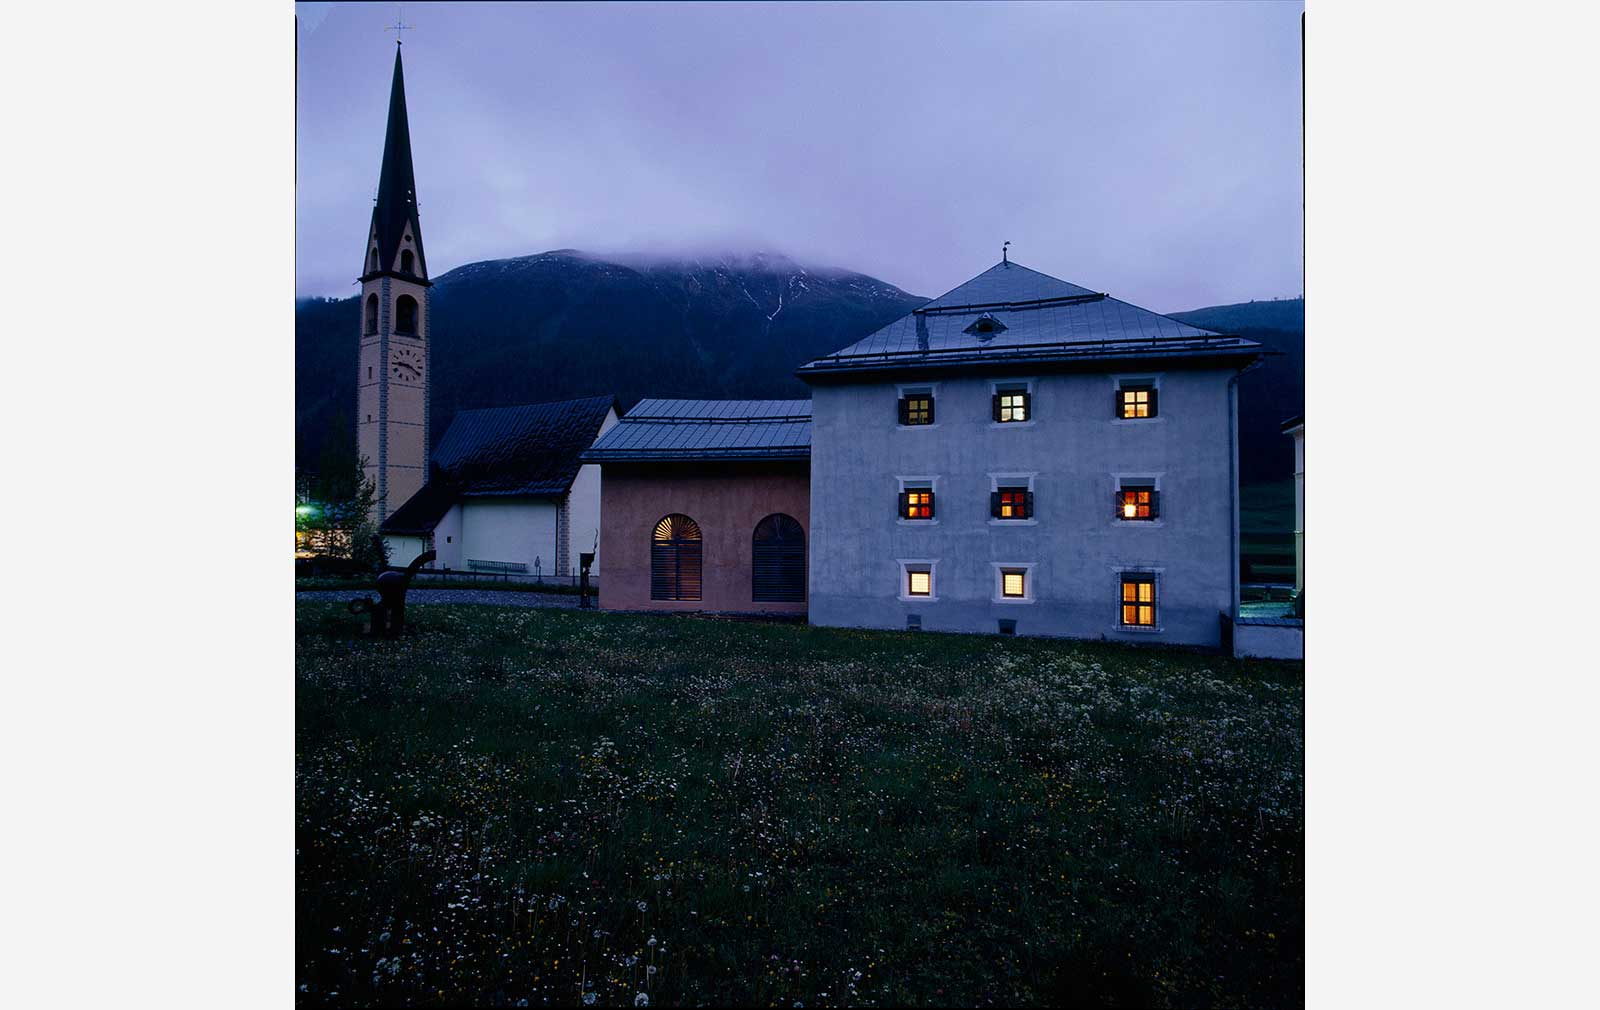 Von Bartha gallery features in our guide to art in the Alps